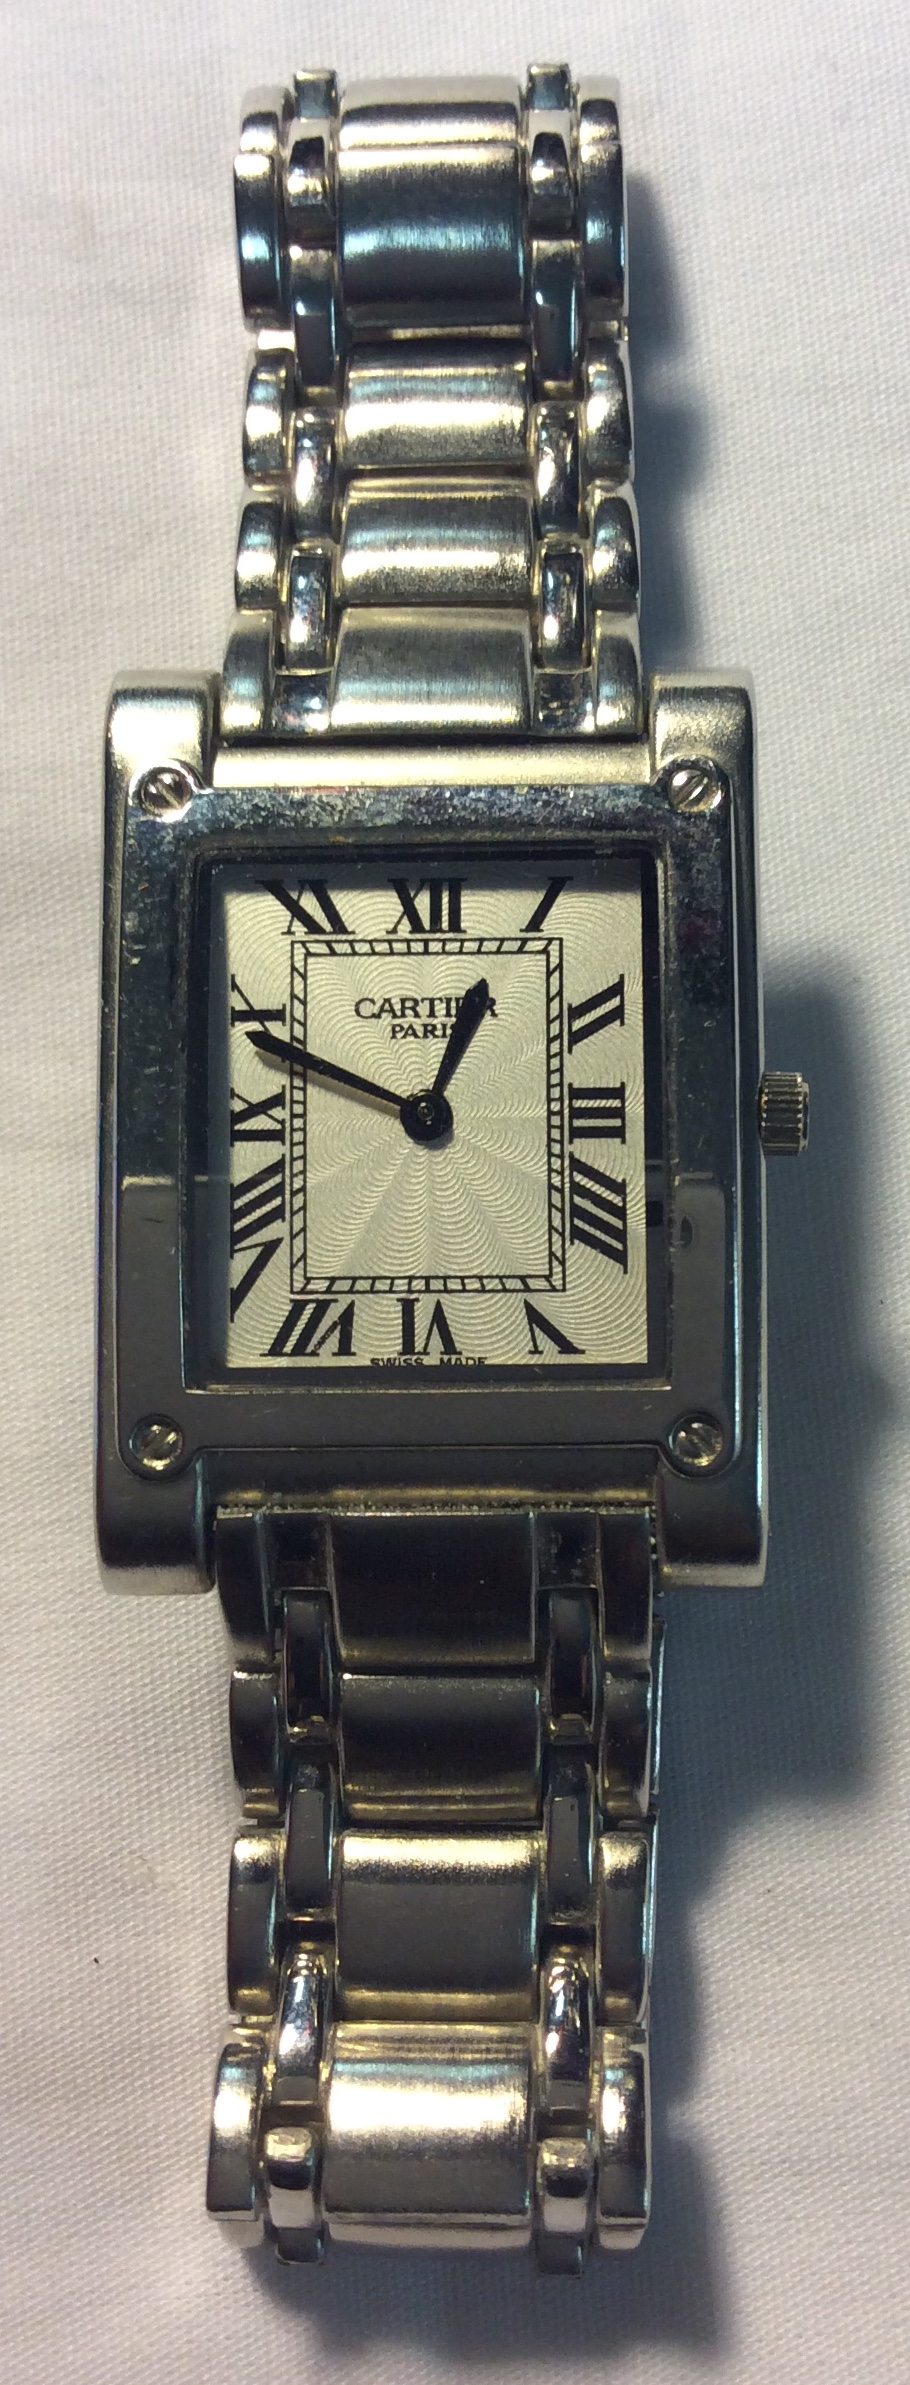 Cartier watch - square white face